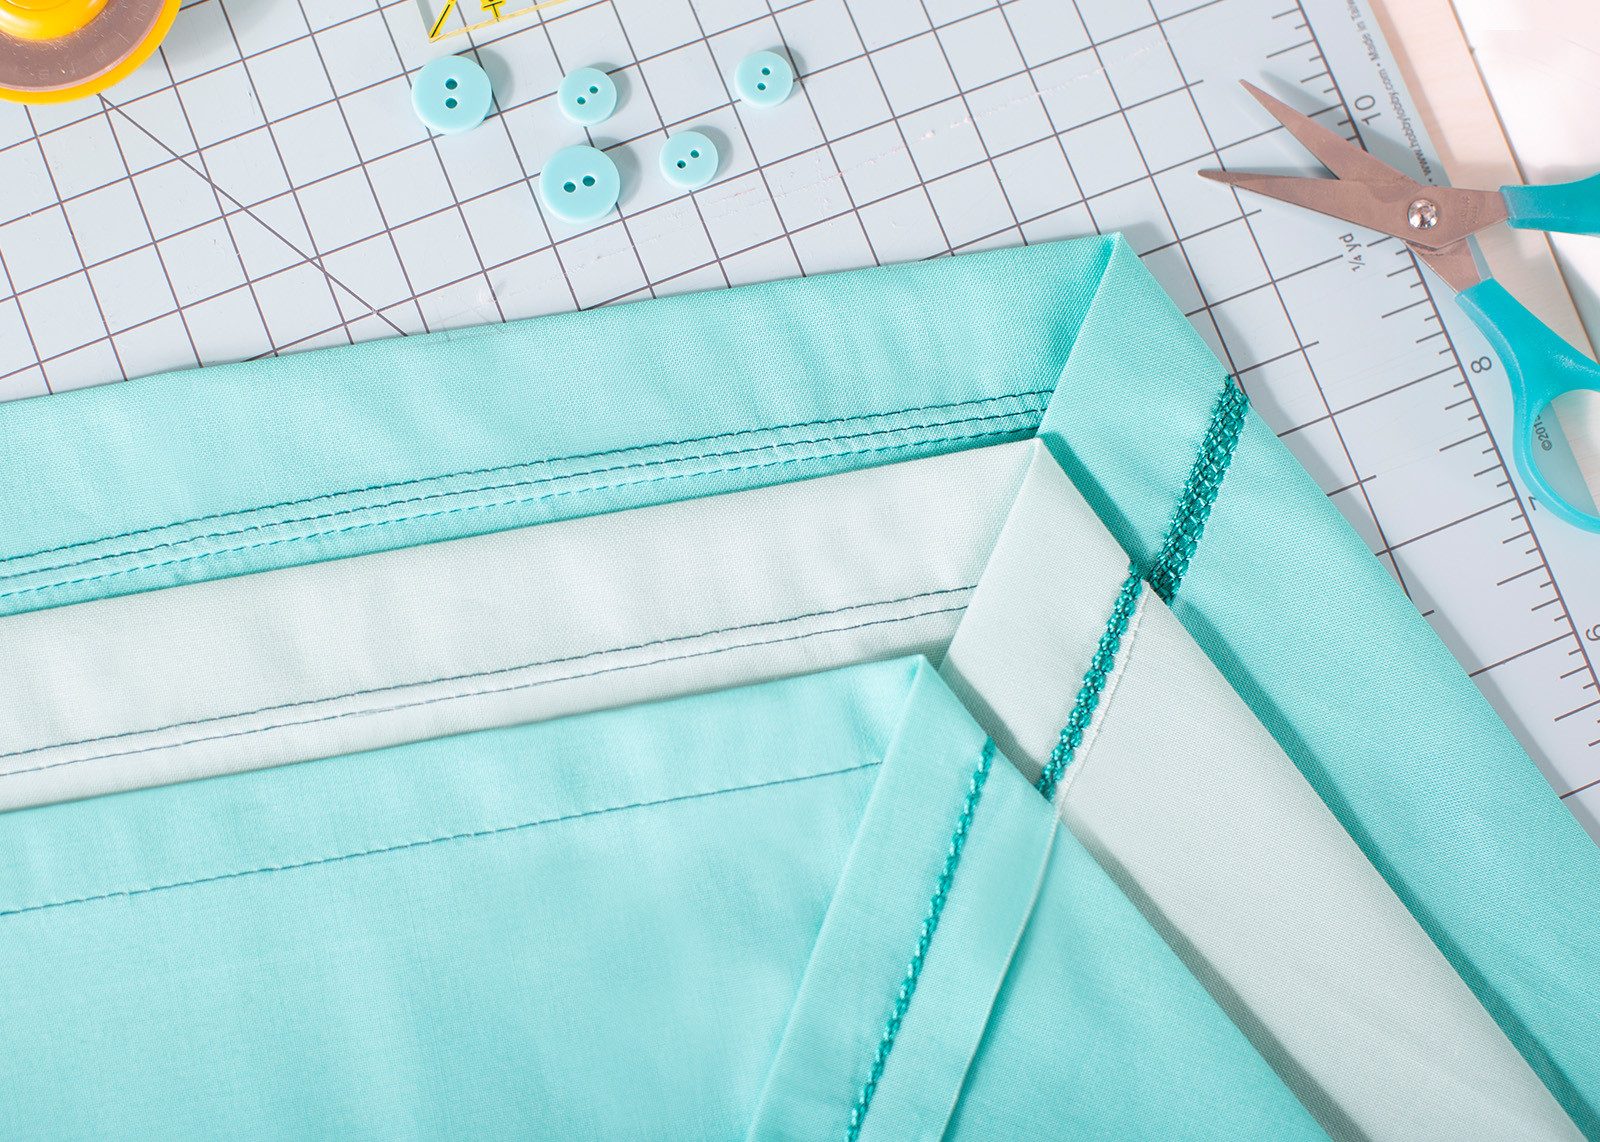 Baby Lock Euphoria Cover Stitch Serger Sewing Machine creates professionally finished hems and seams.